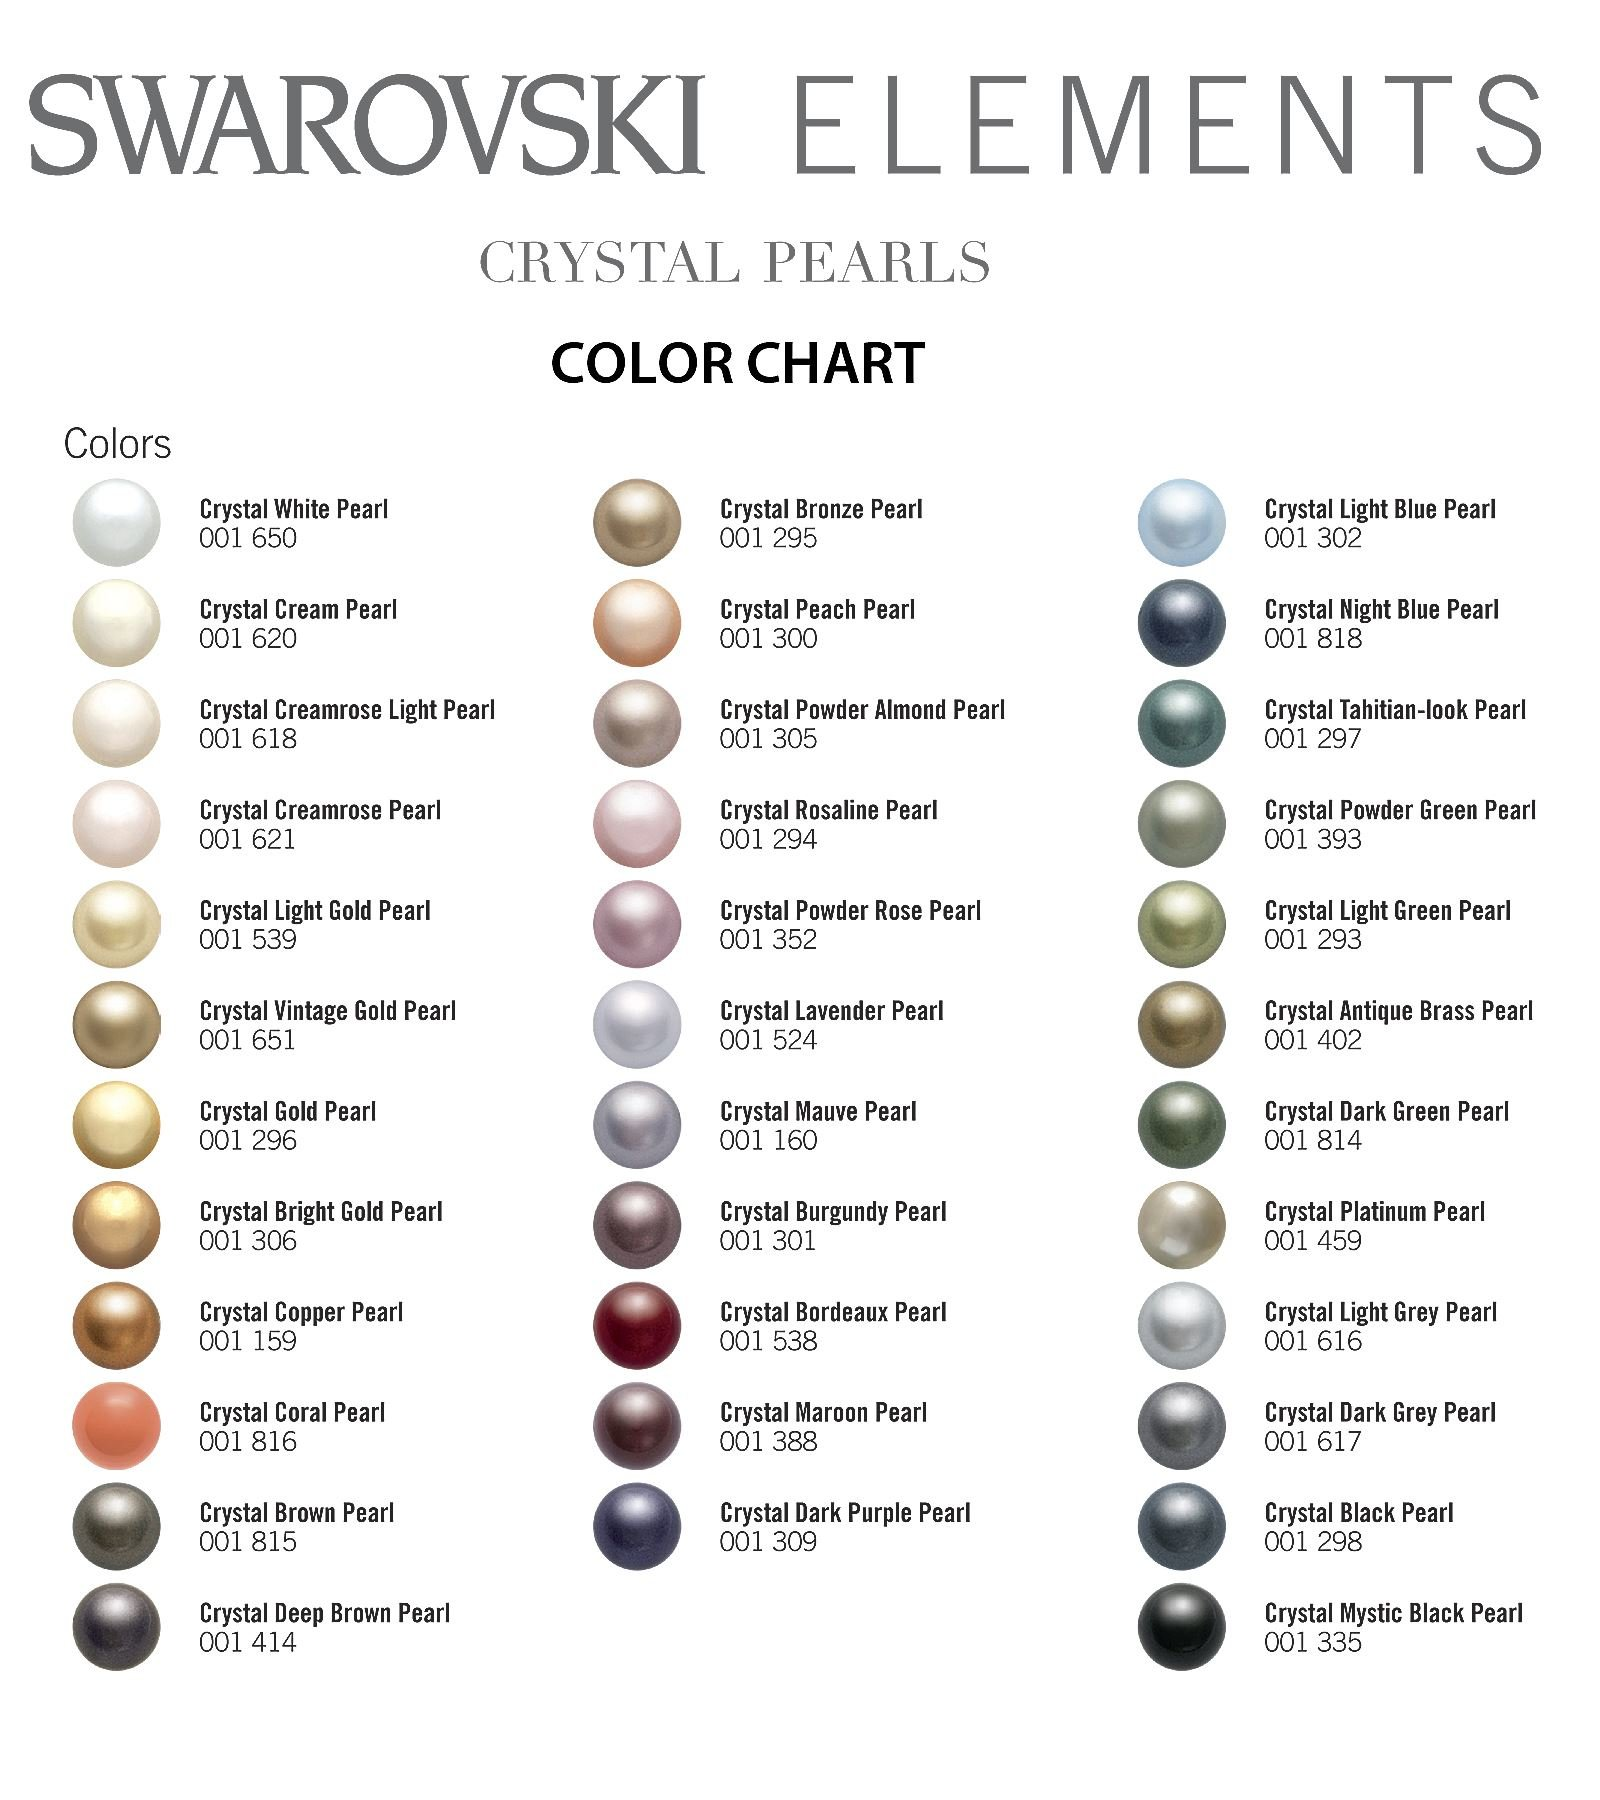 Crystal Pearl Color Chart